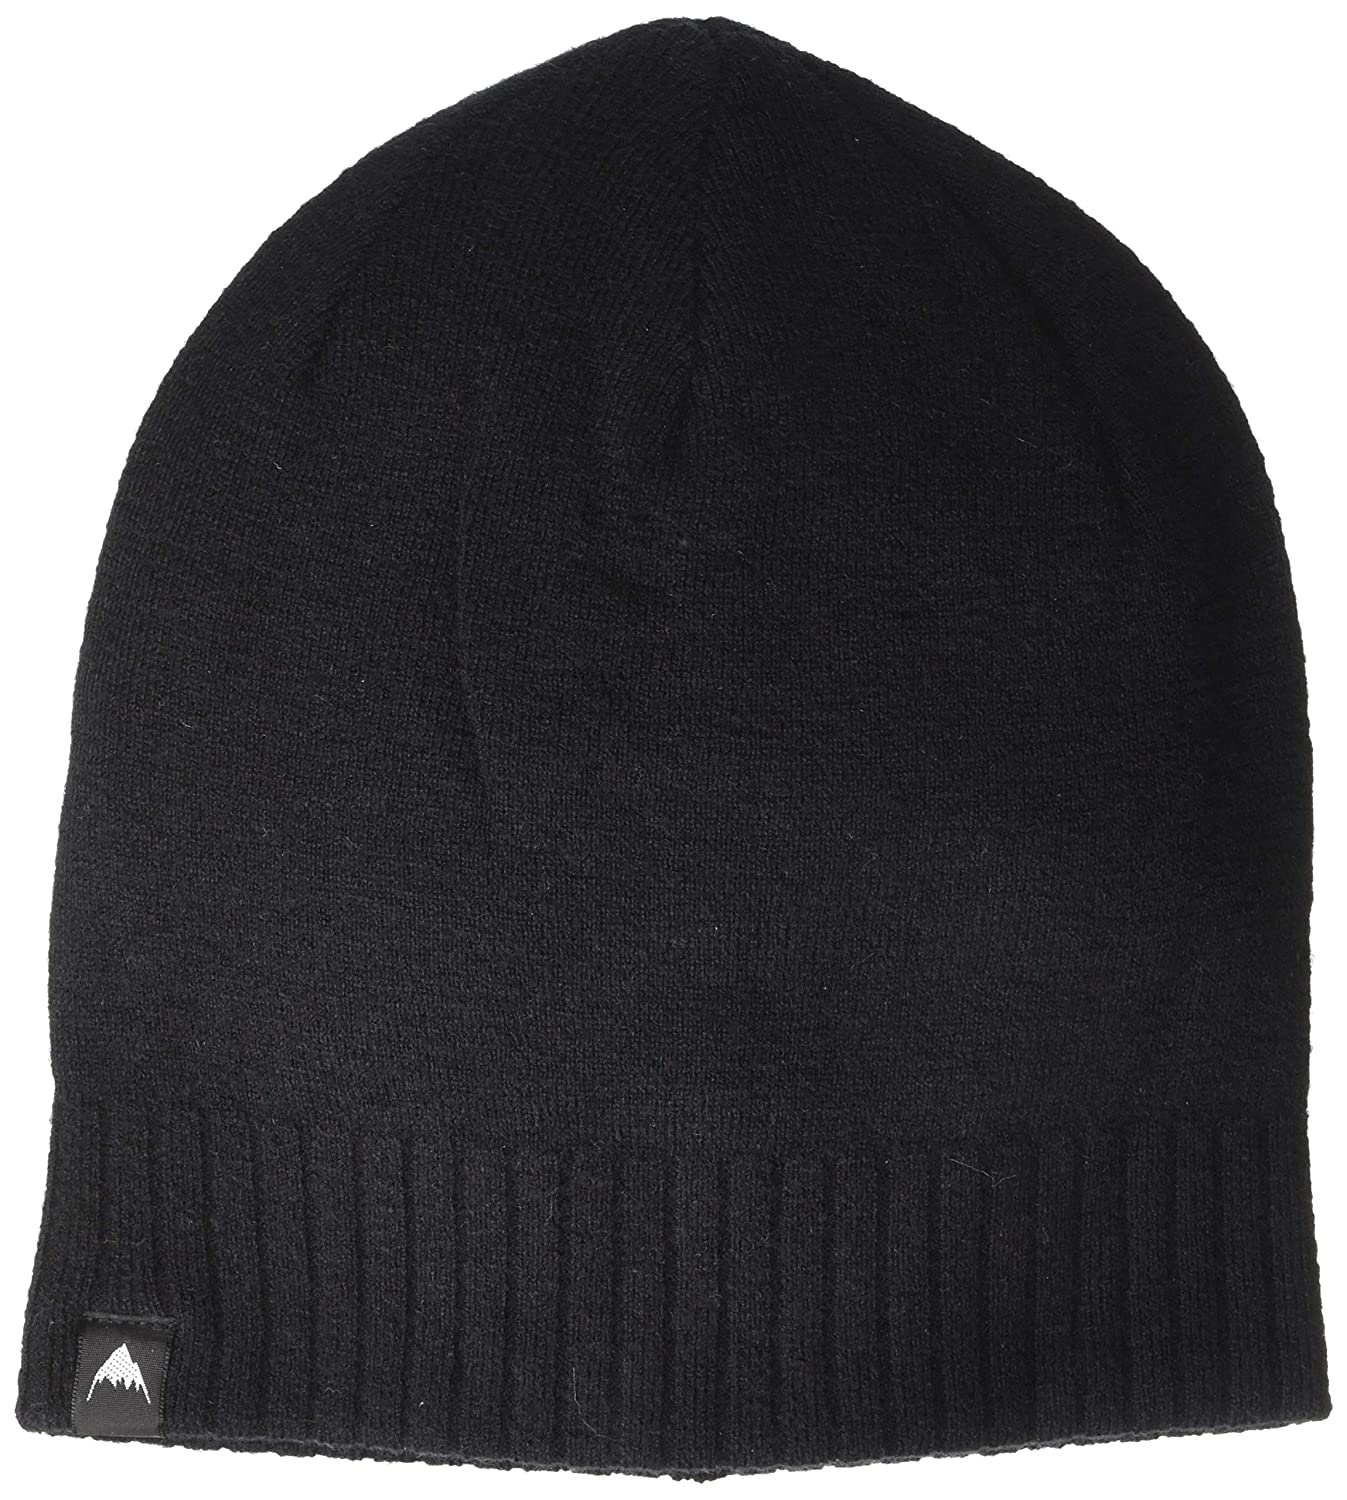 60c48195f Amazon.com: Burton Wool Liner Beanie, True Black, One Size: Sports ...